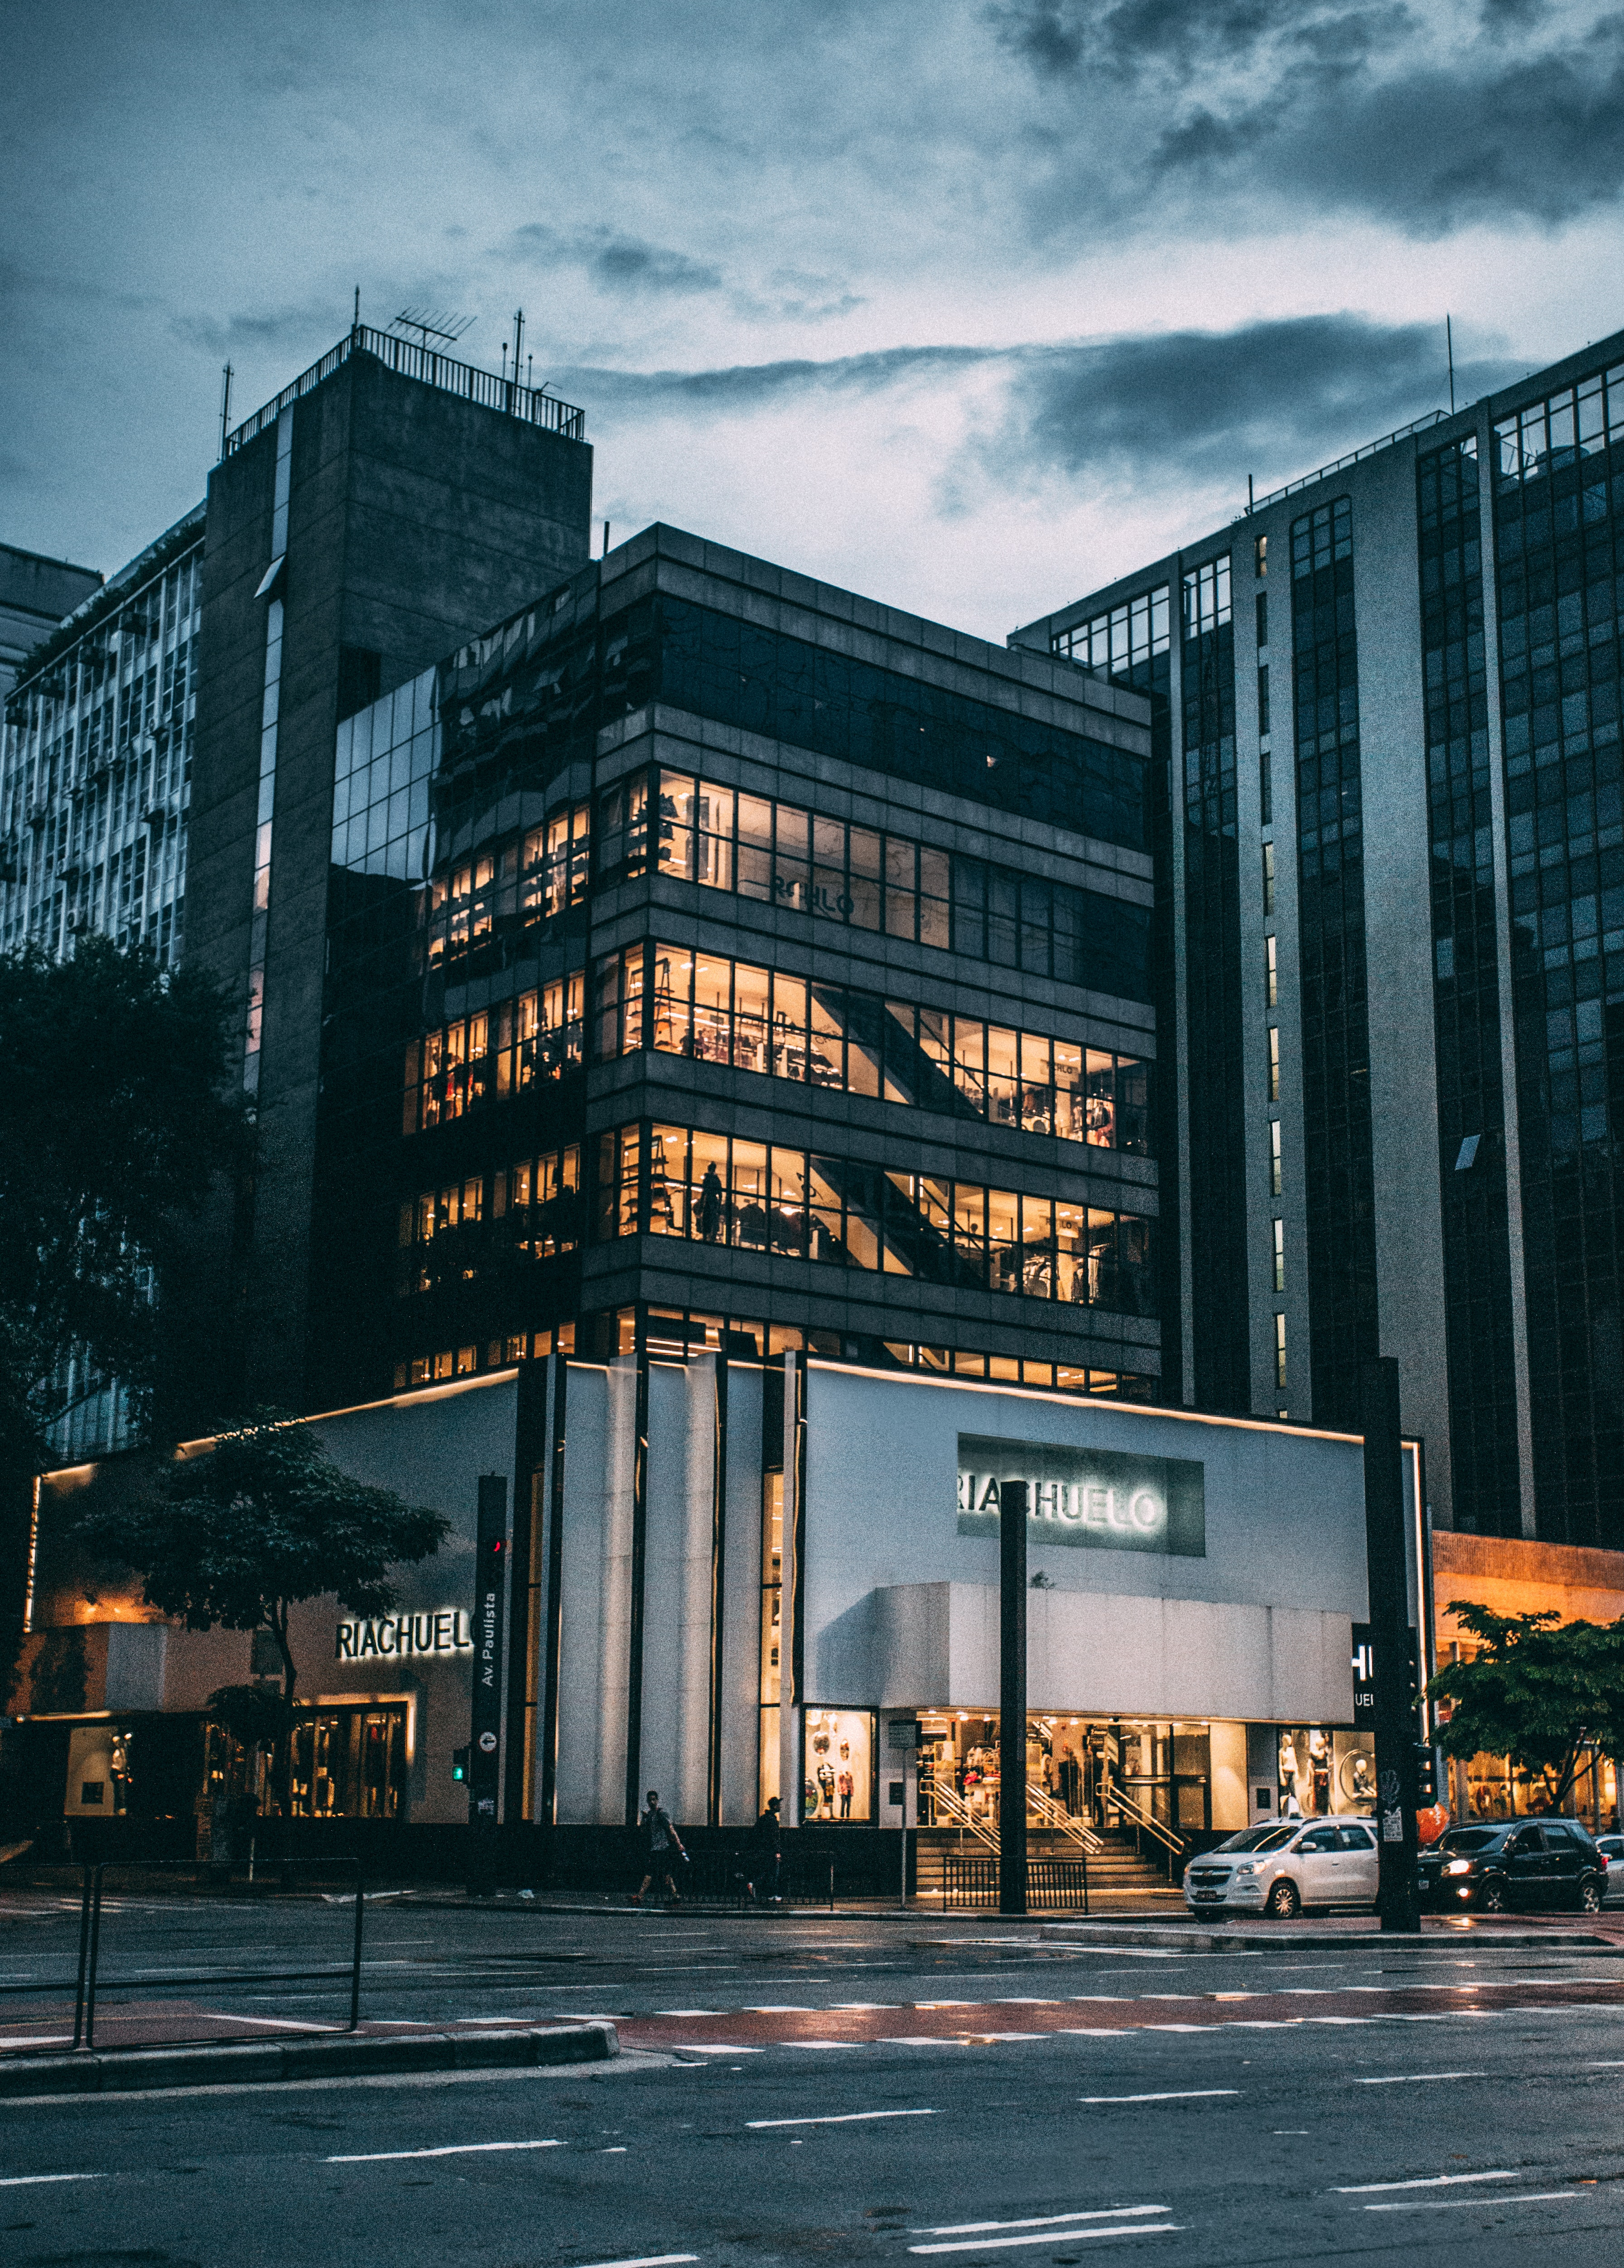 Black High Rise Building Under Grey and White Sky during Night Time, Brazil, Building, City, Department store, HQ Photo